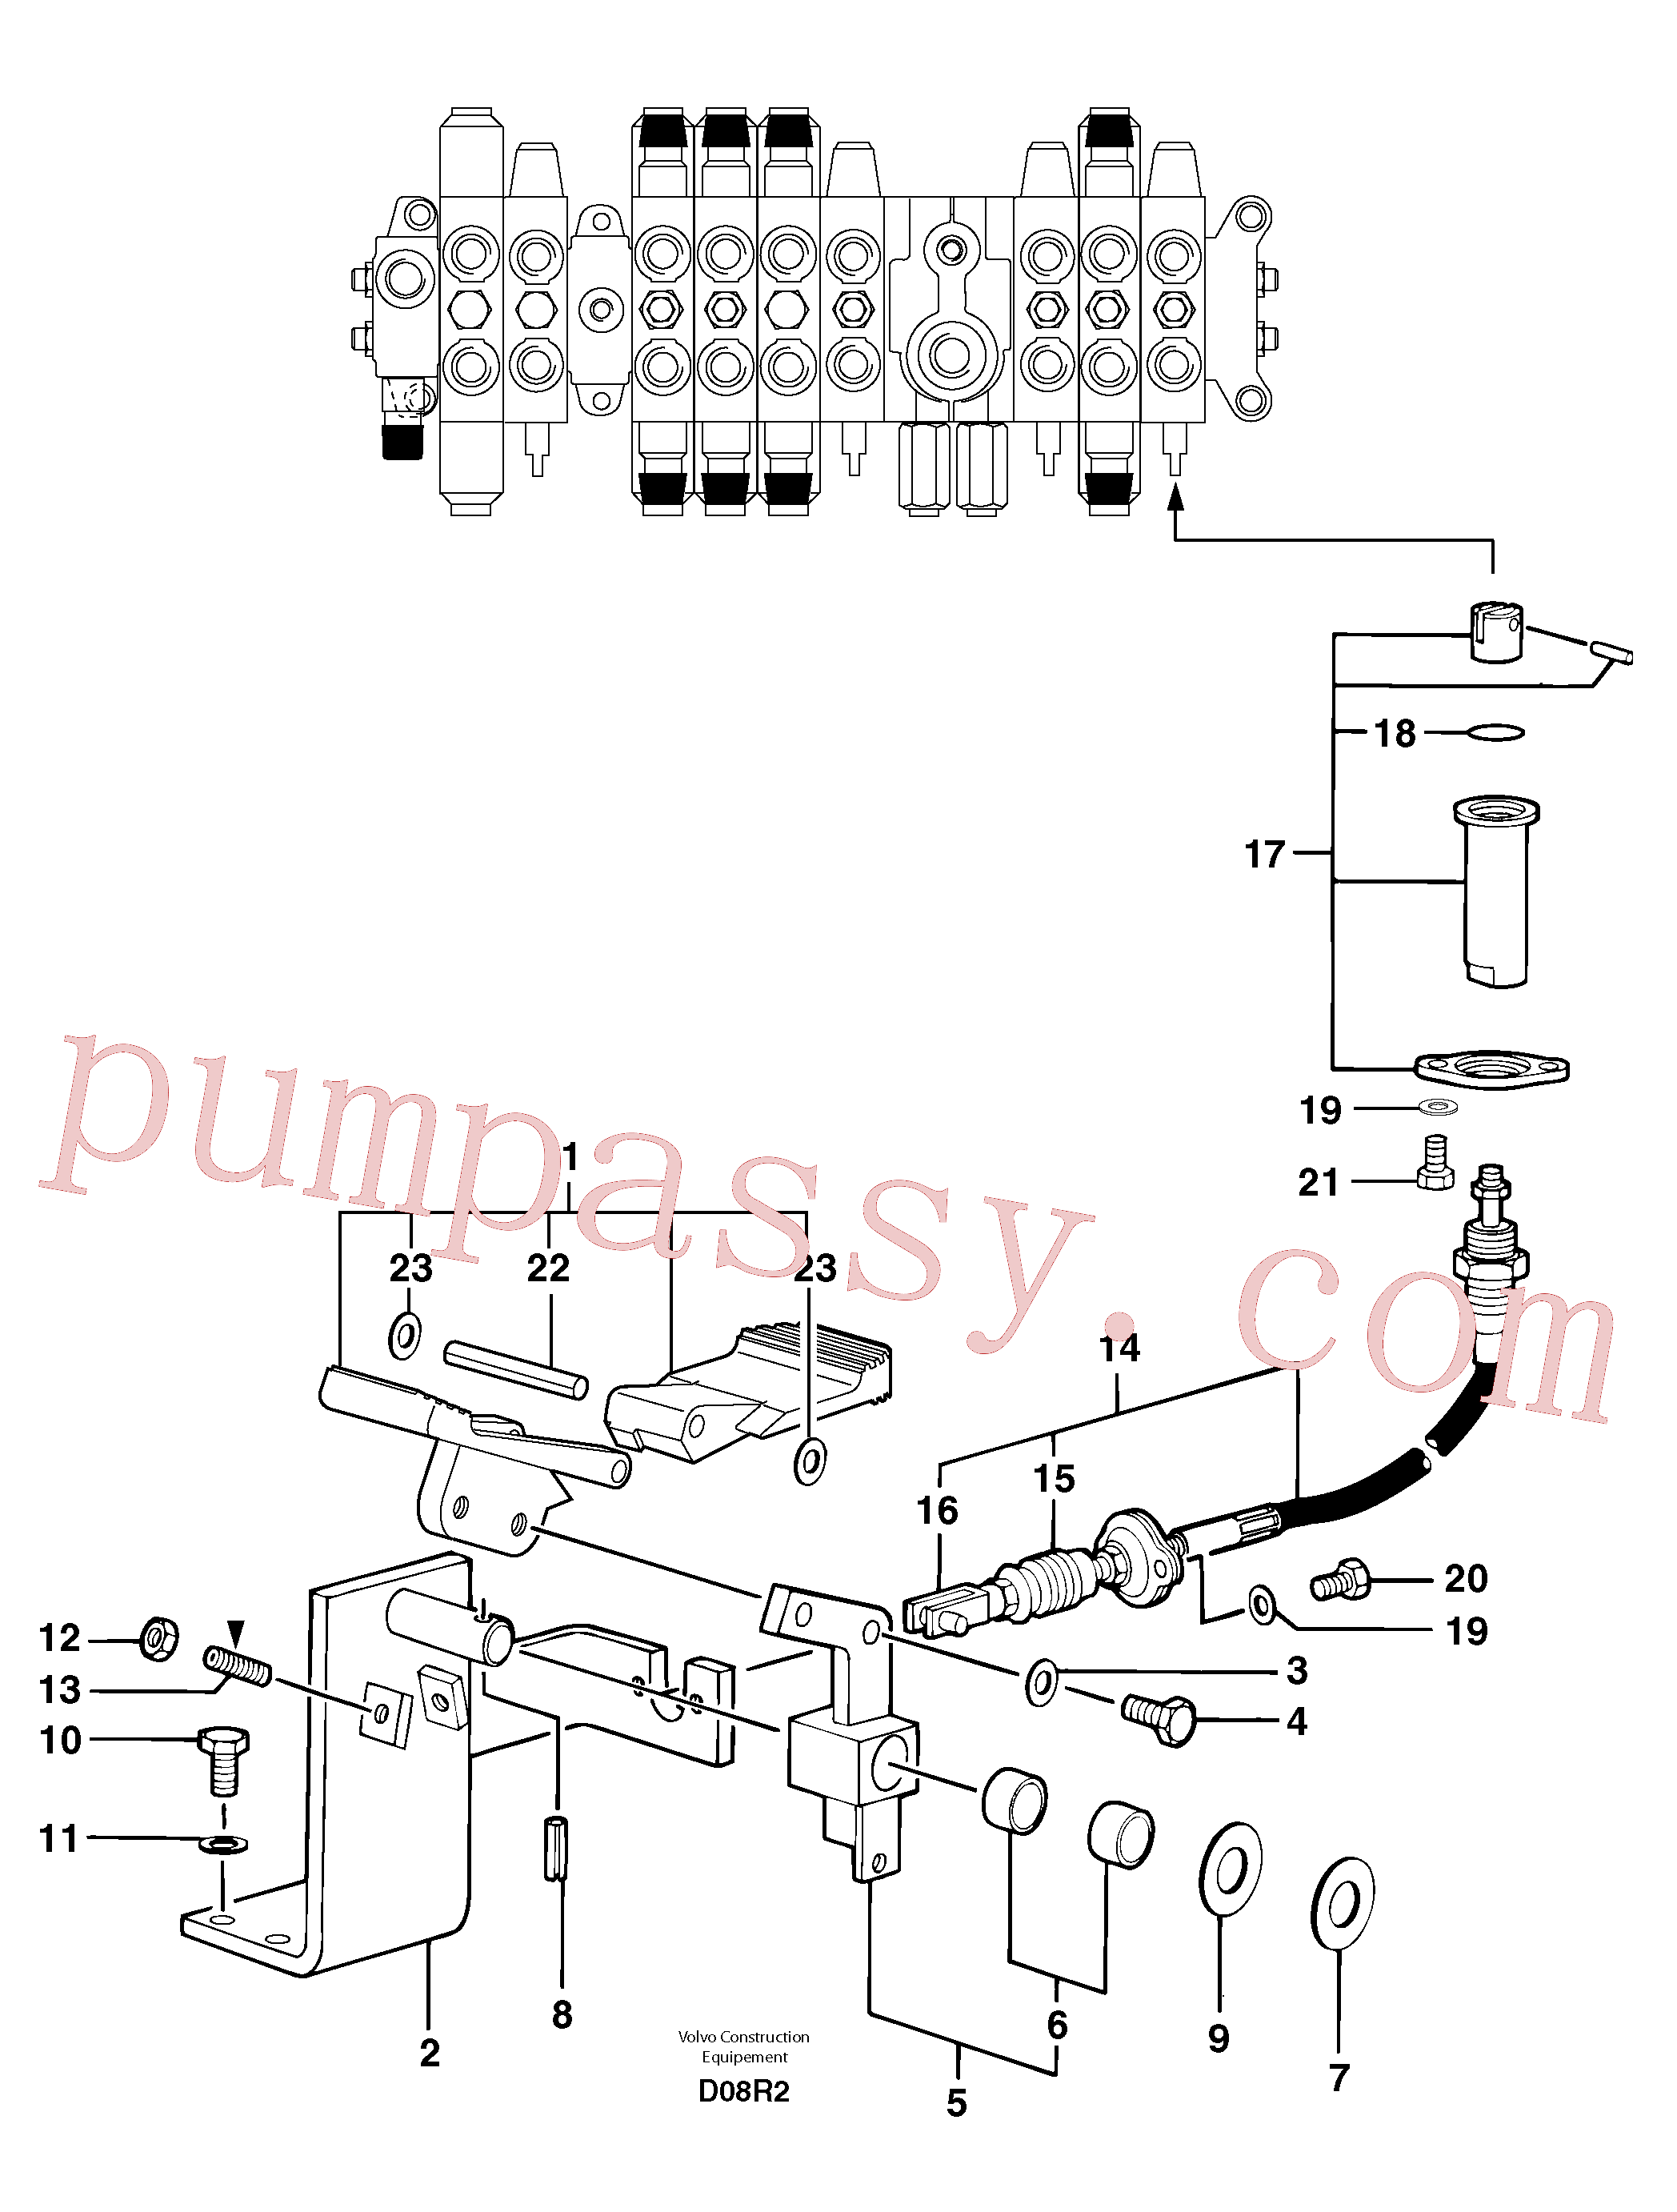 PJ4490021 for Volvo Control pedal : accessories on attachment - 75 l/m(D08R2 assembly)